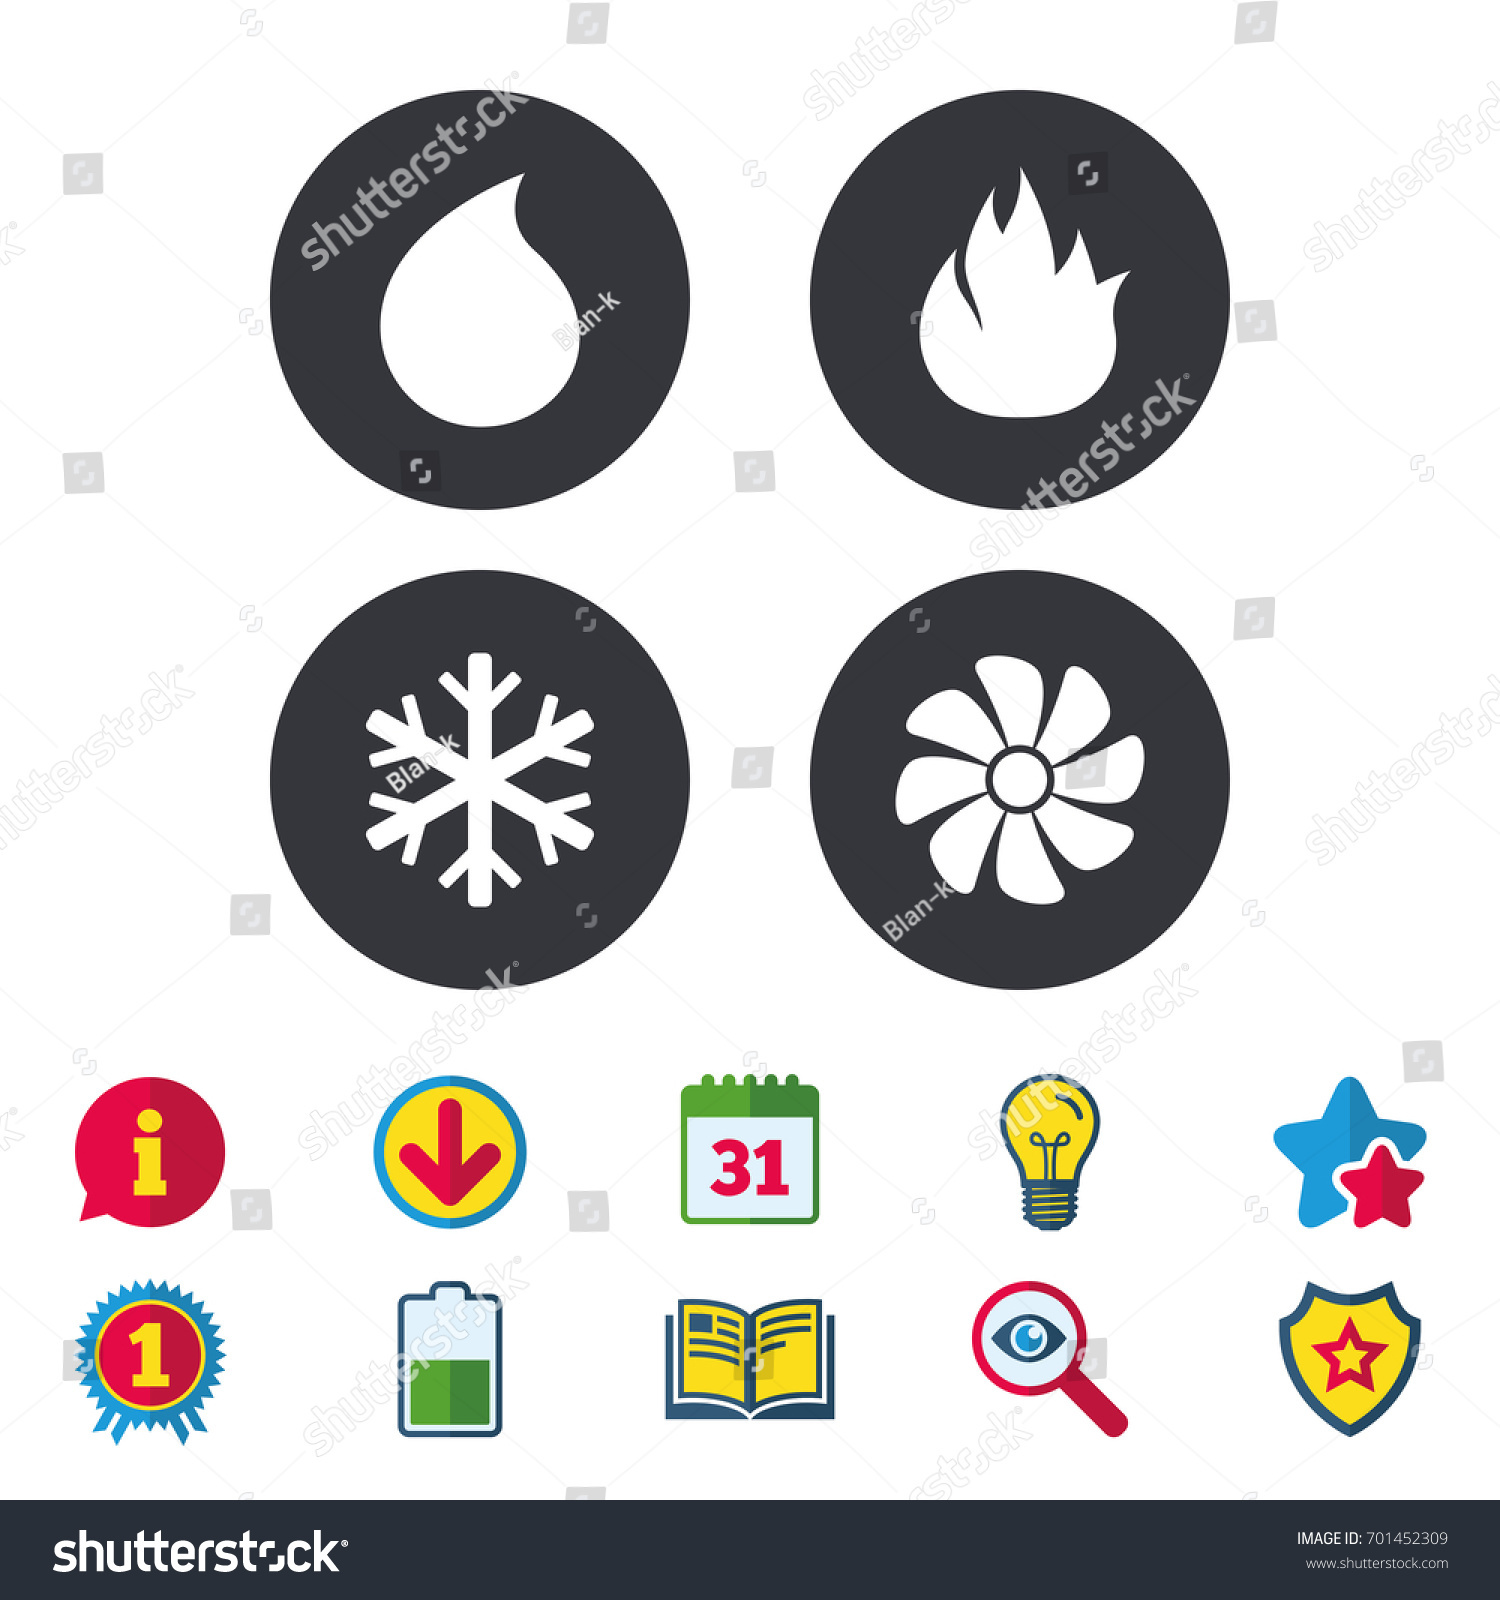 stock vector hvac icons heating ventilating and air conditioning symbols water supply climate control 701452309 hvac schematic symbols dolgular com  at aneh.co